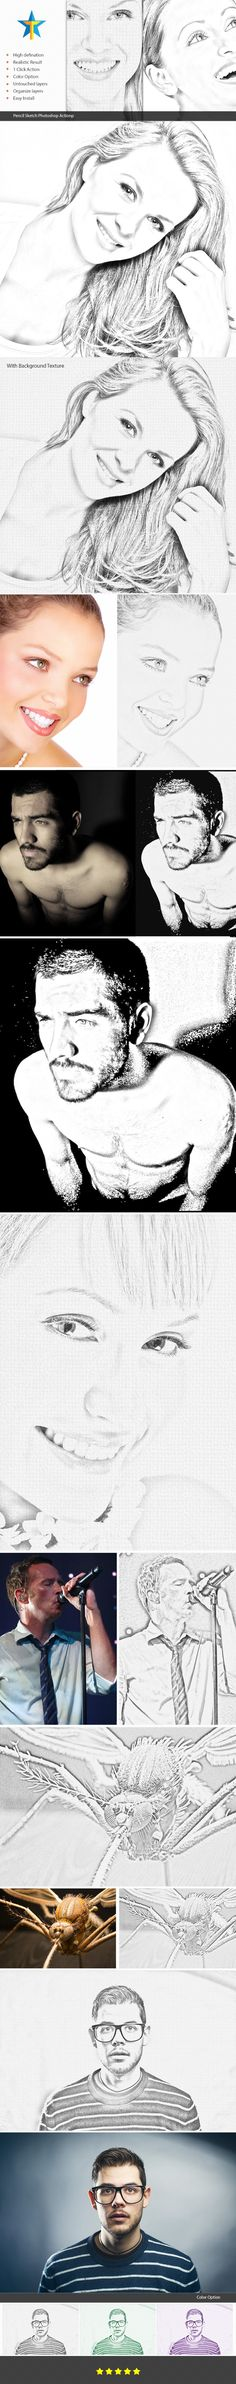 Pencil Drawing Photoshop Action — Photoshop ATN #drawing #creative • Available here → https://graphicriver.net/item/pencil-drawing-photoshop-action/19393738?ref=pxcr